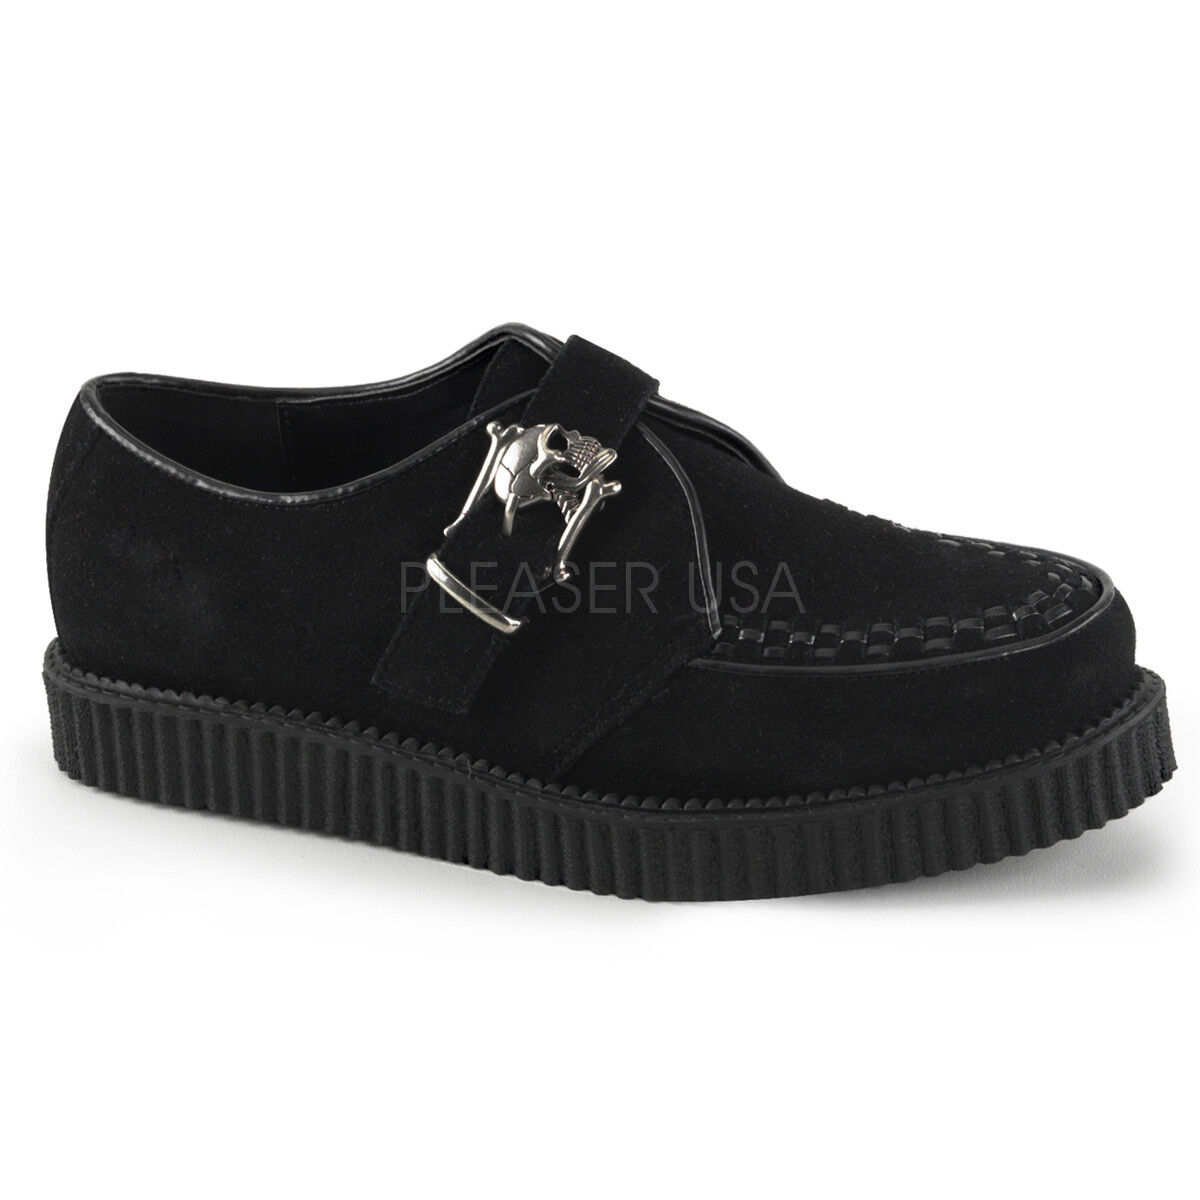 DEMONIA CRE605 BS Women's Black Suede Skull Buckle Creepers Gothic Punk shoes